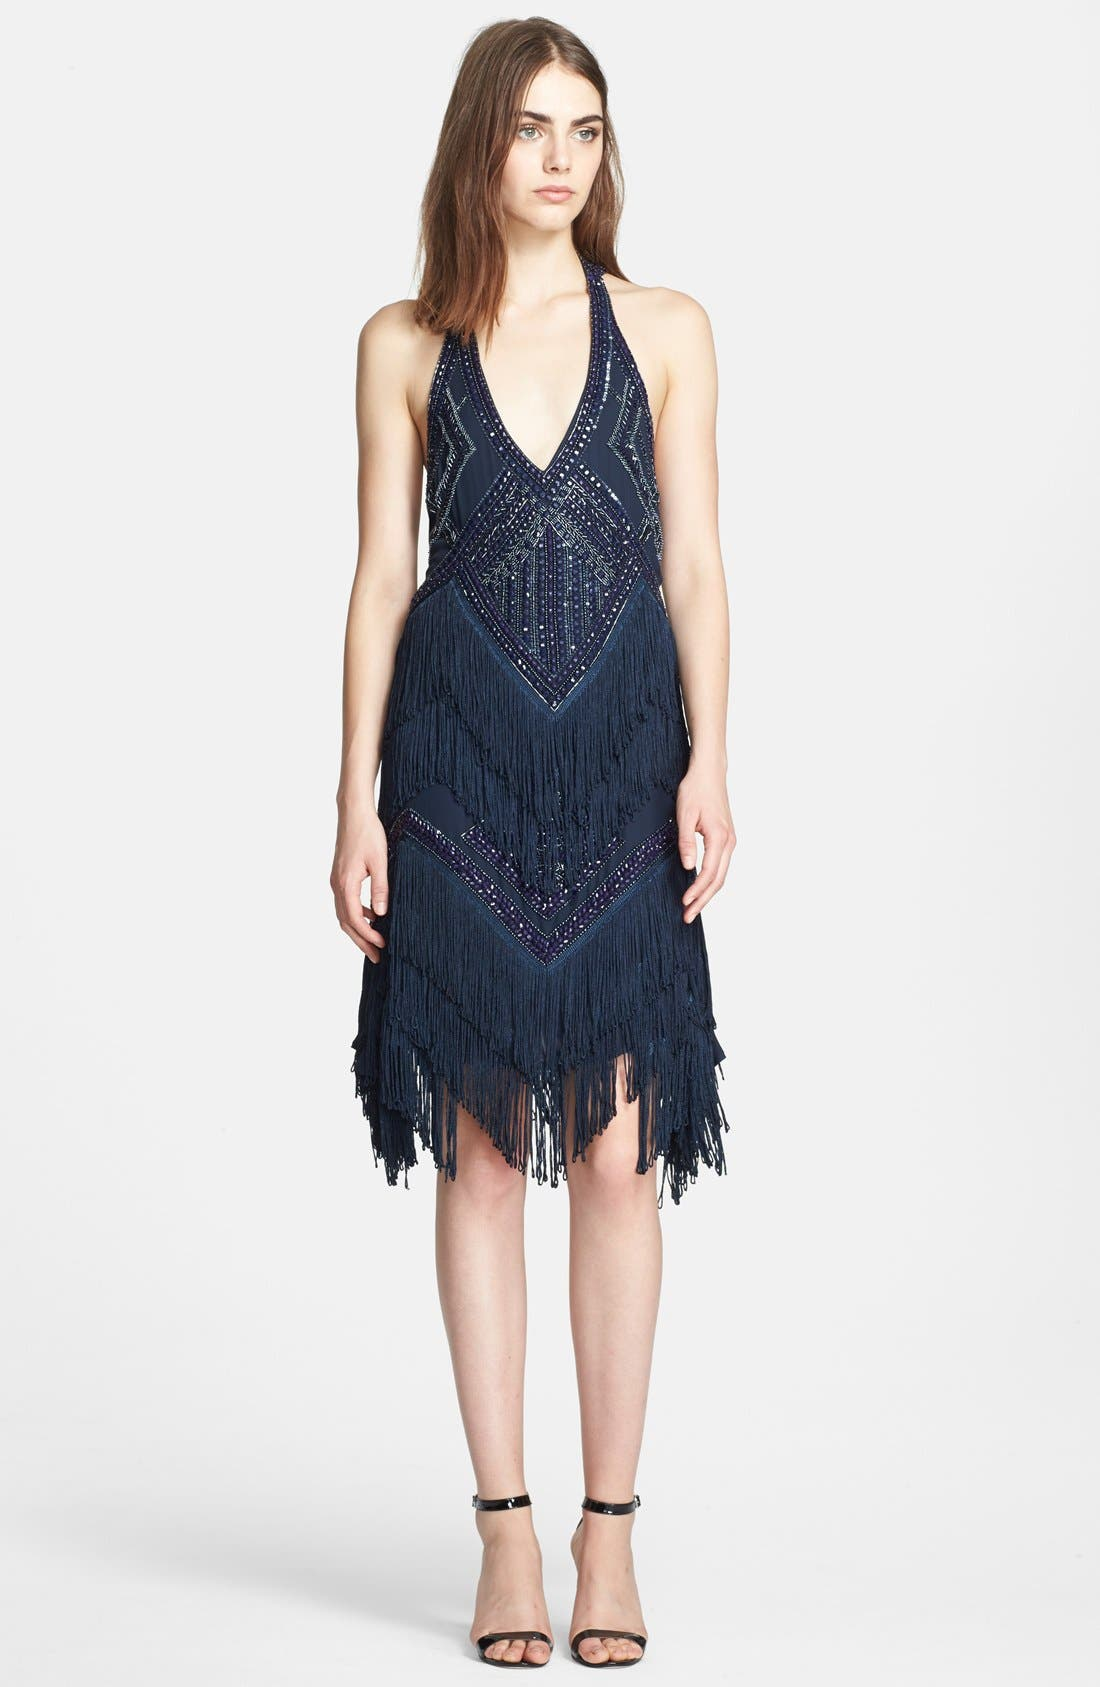 Main Image - Haute Hippie Bead Embellished T-Back Silk Dress with Fringe Skirt